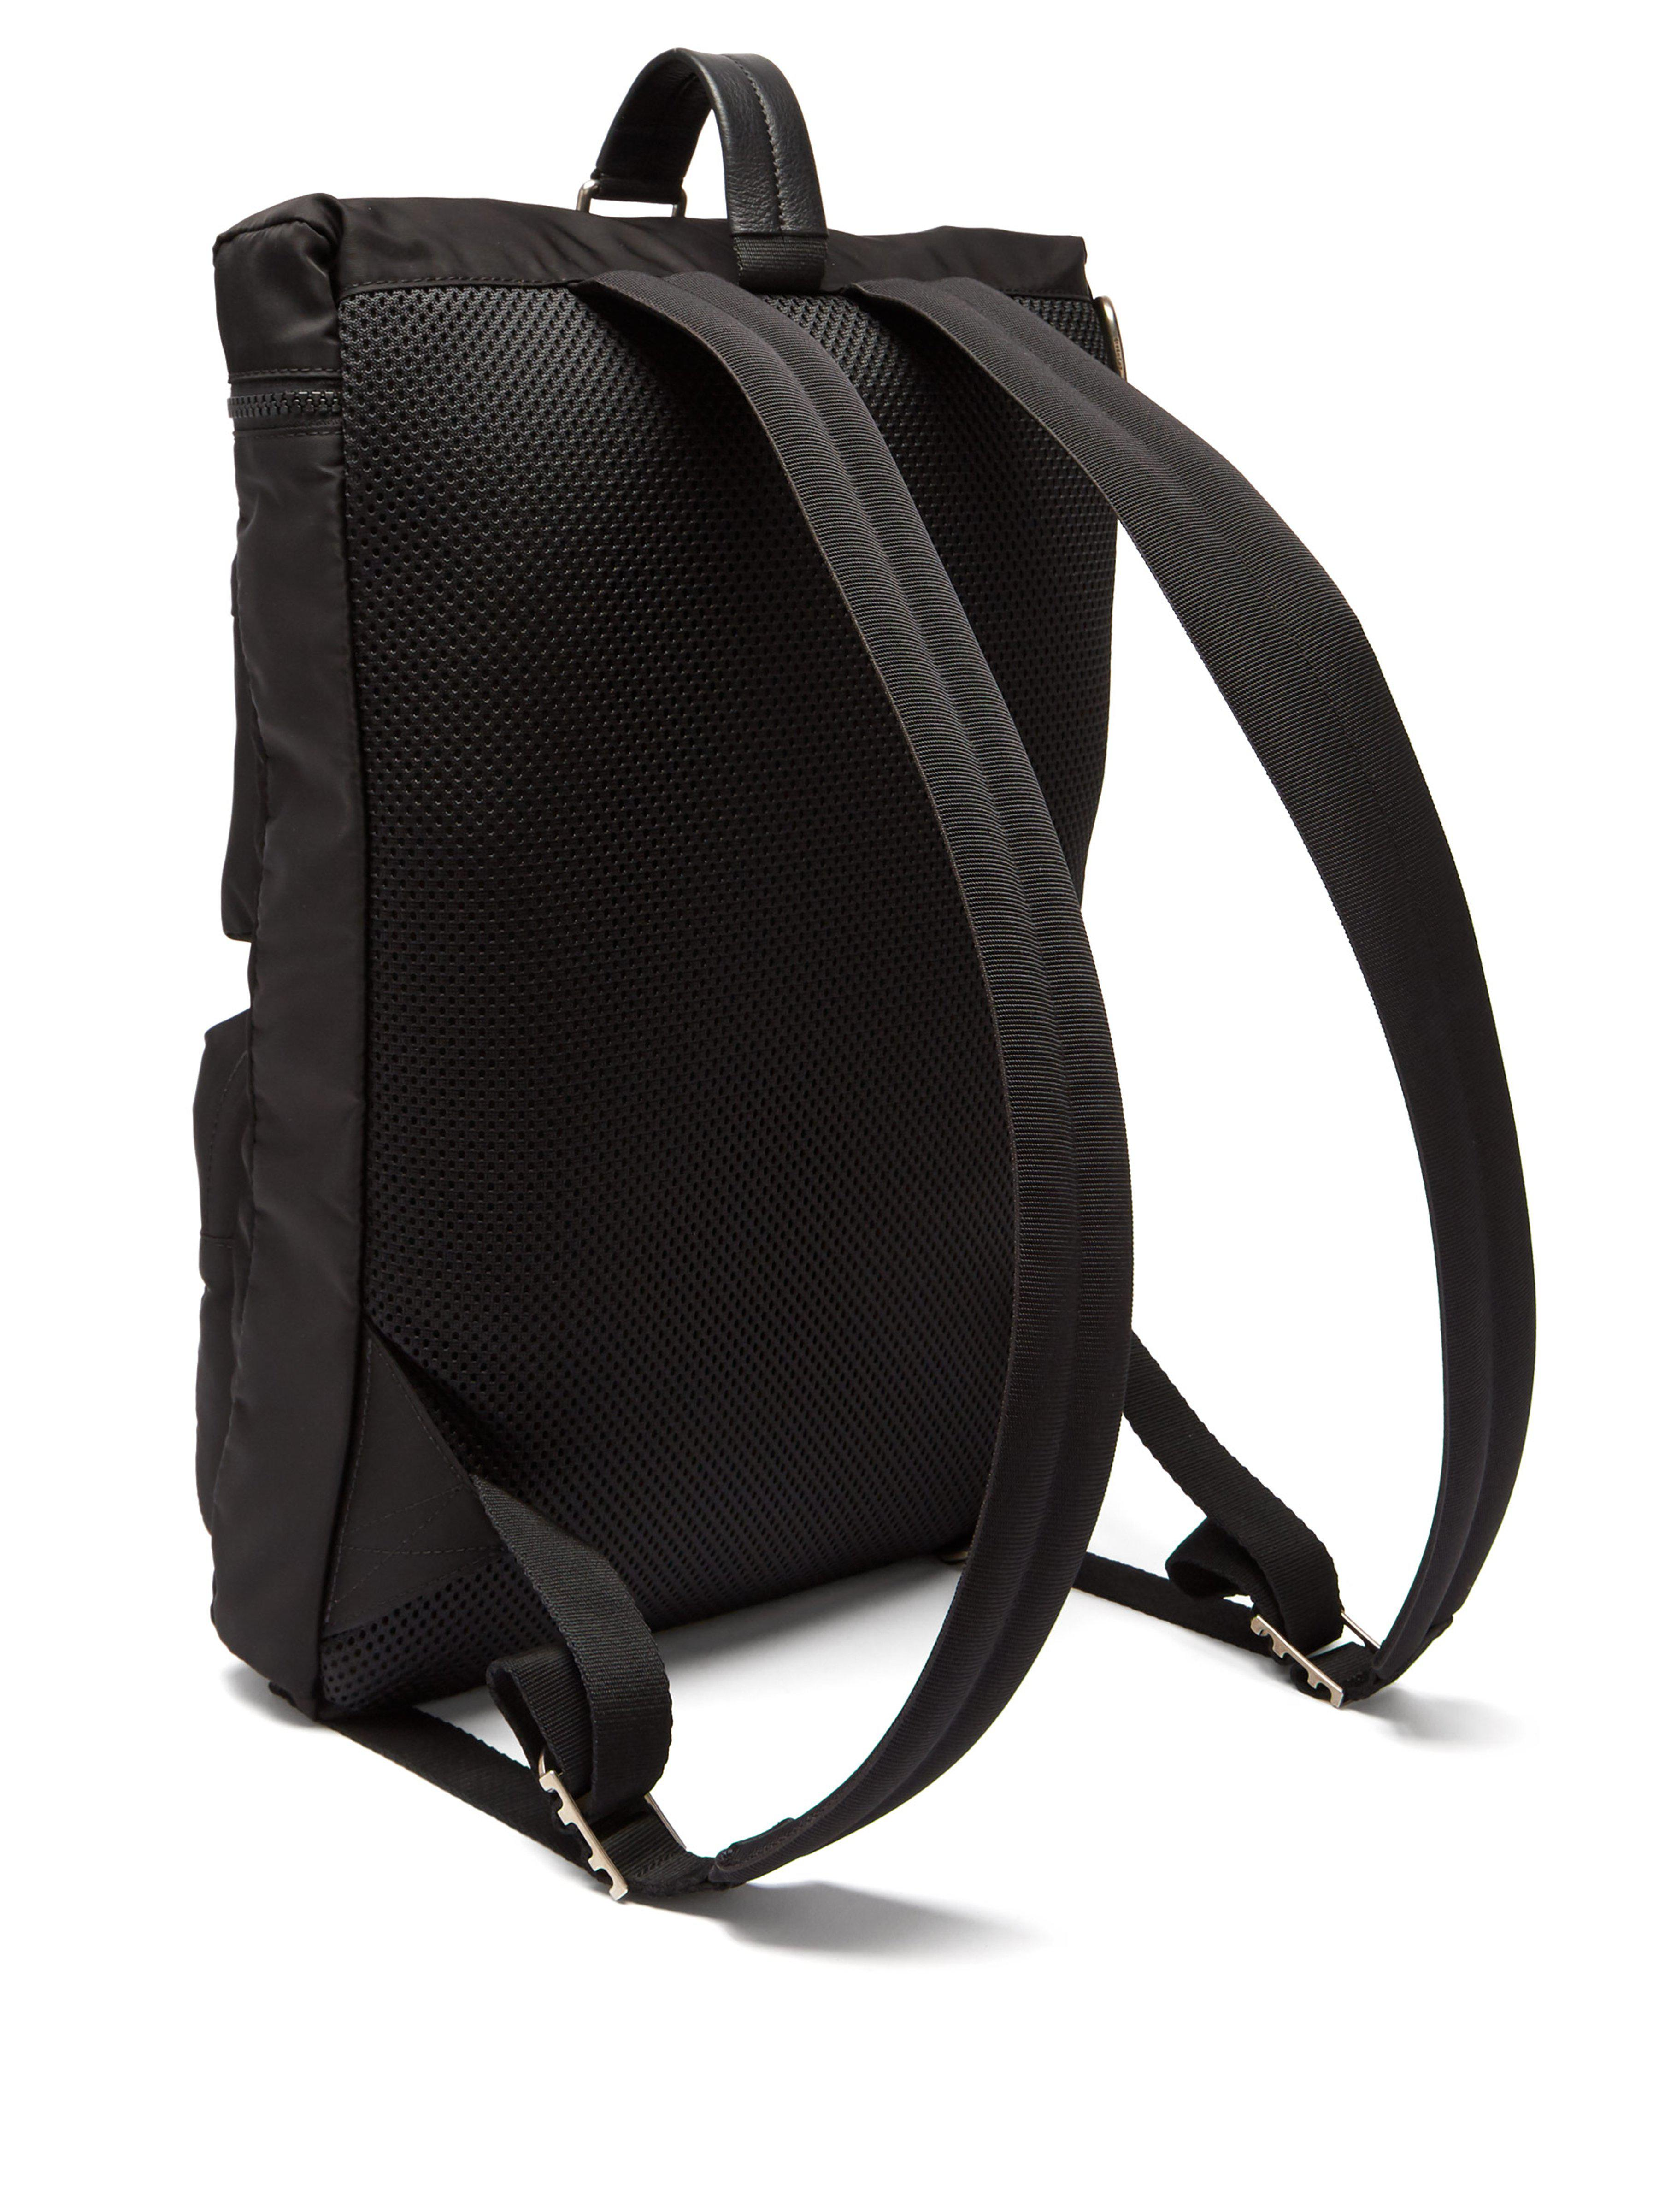 Givenchy Synthetic Ut3 Leather Trimmed Nylon Backpack in Black for Men